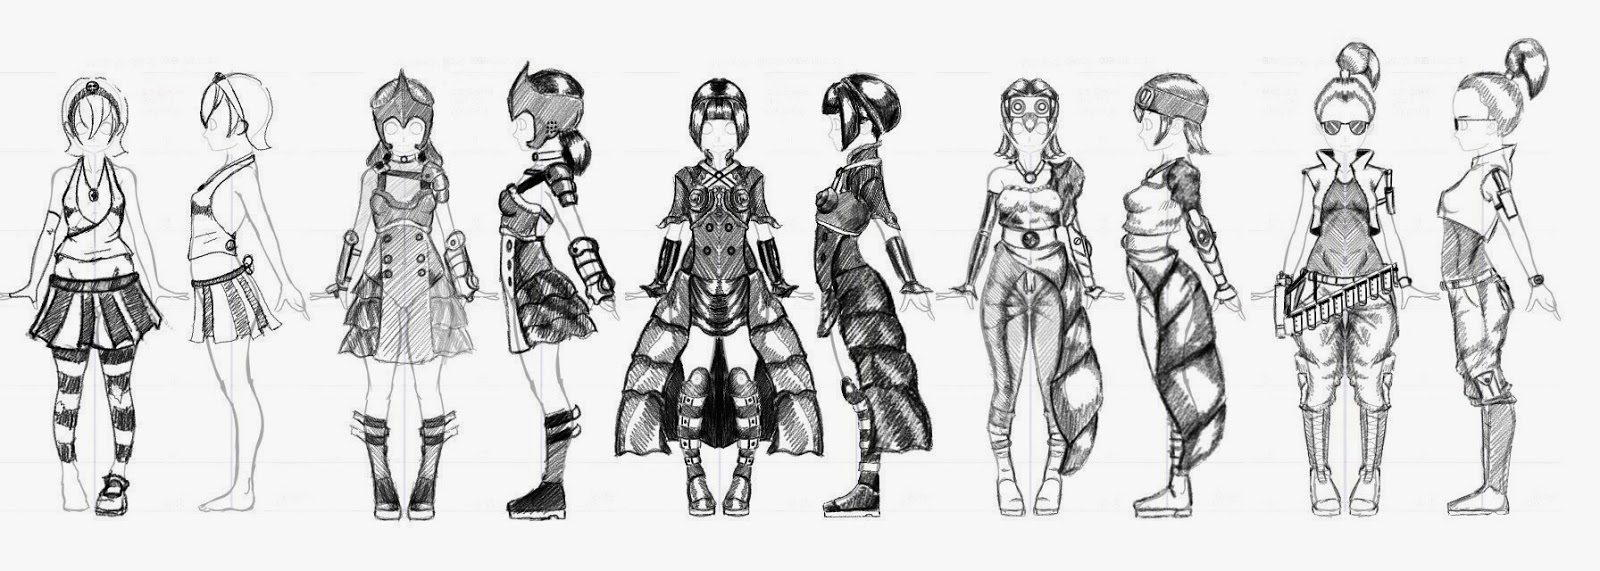 Anime Clothes Design Games concepts for clothing for